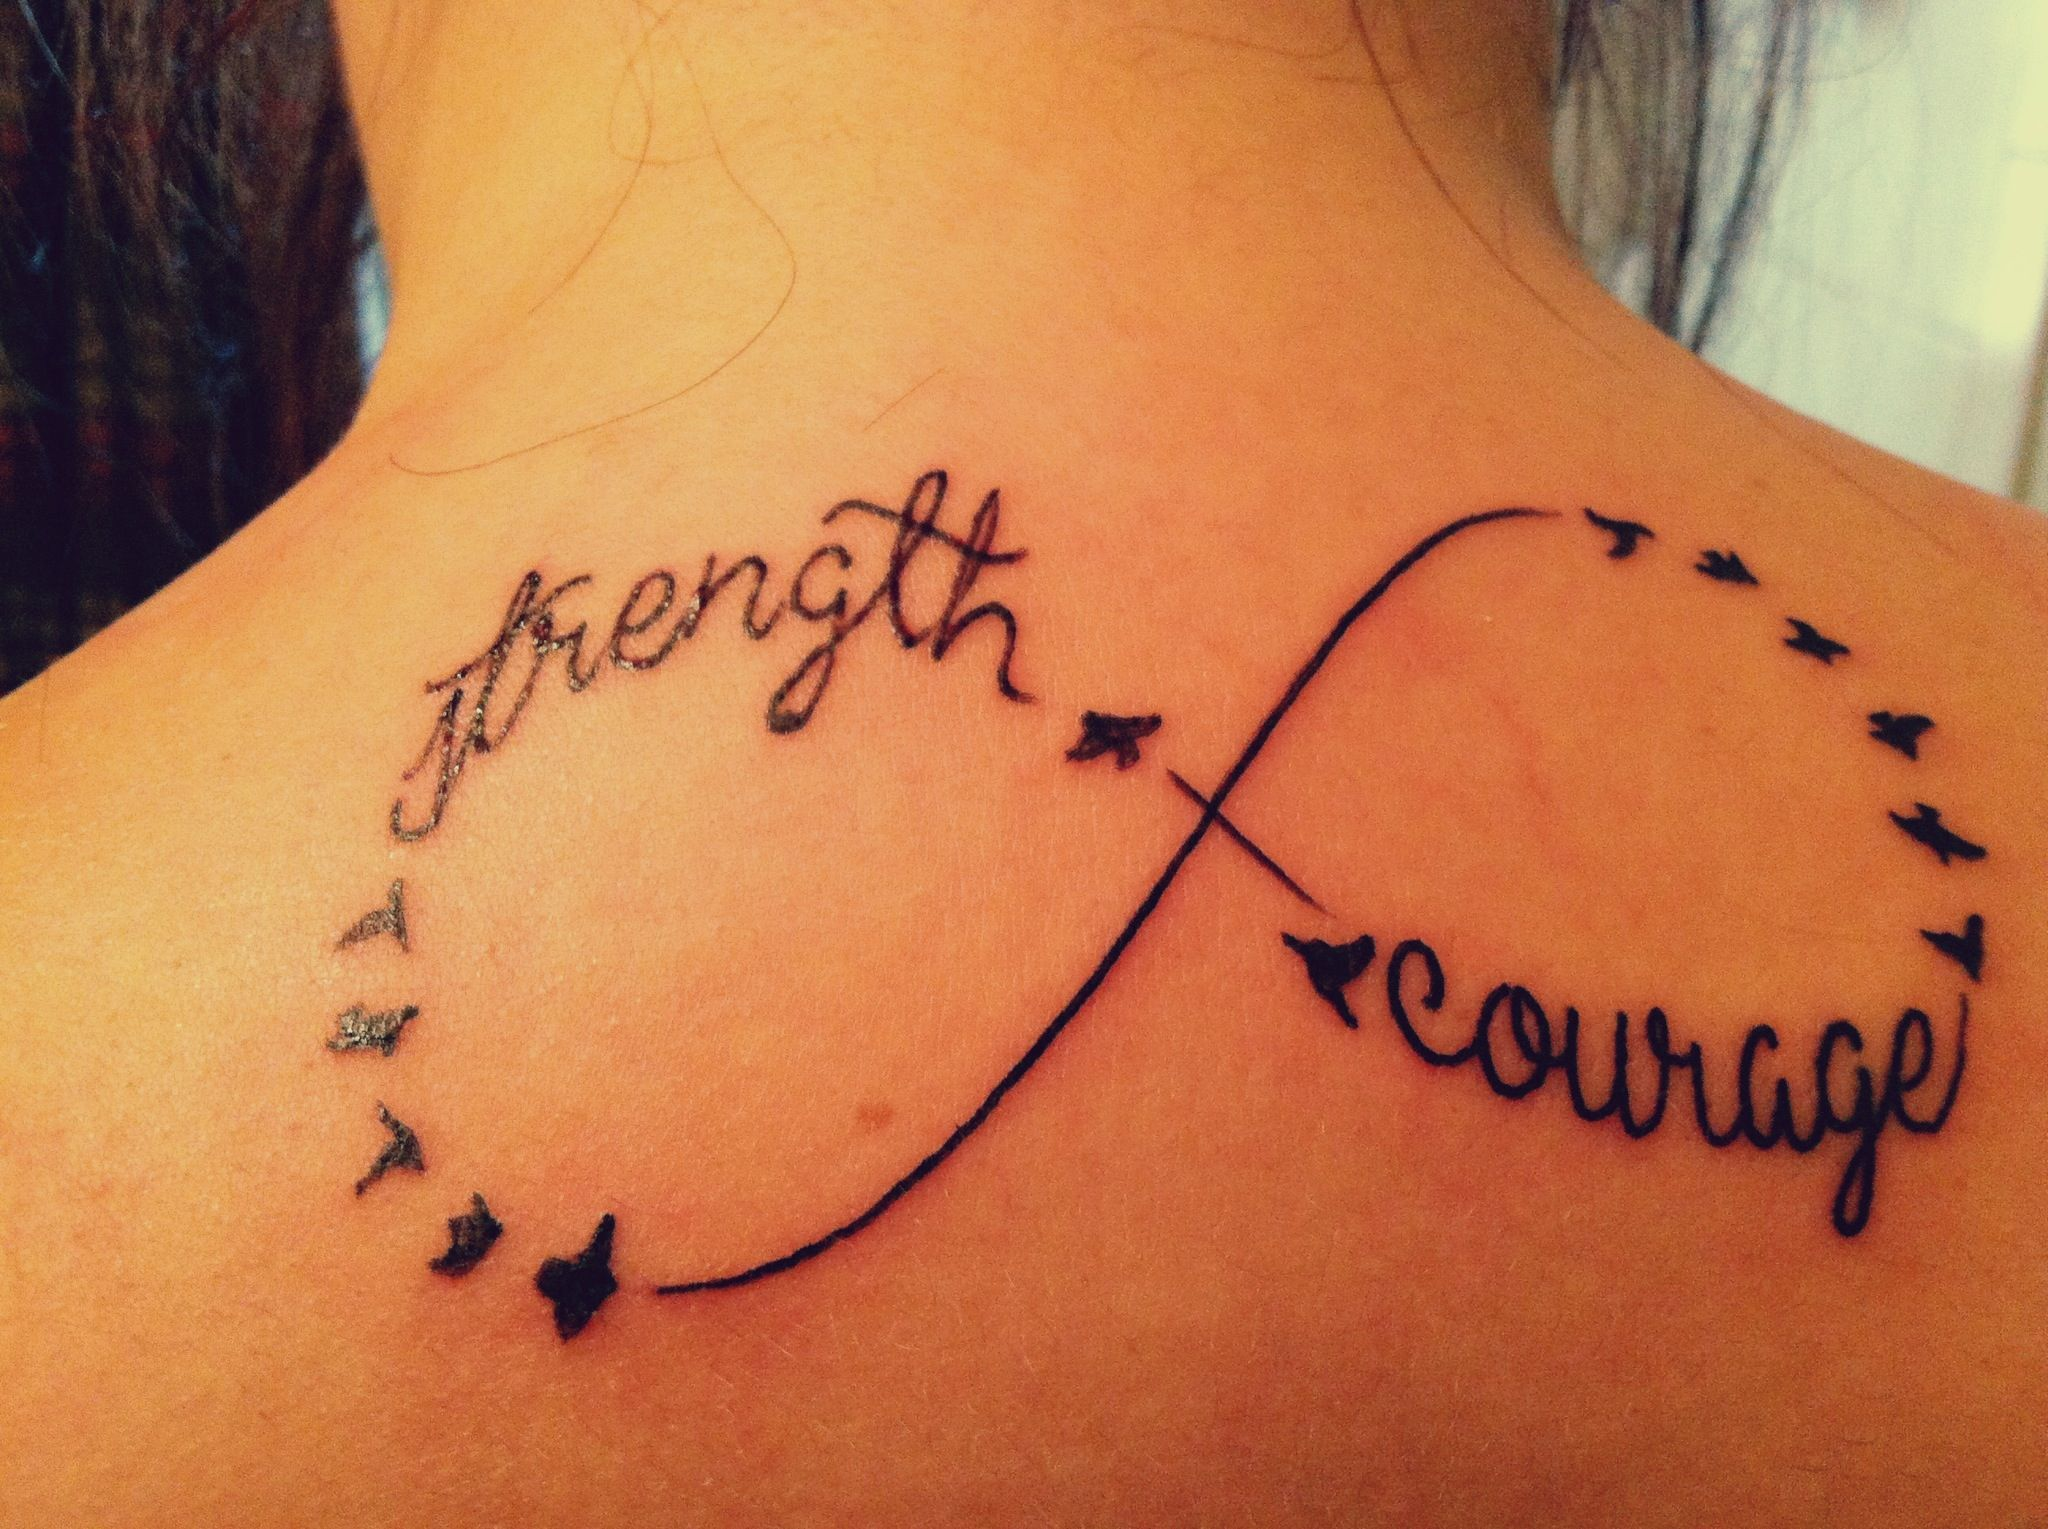 Strength and courage infinity tattoo. | Mom jeans | Pinterest